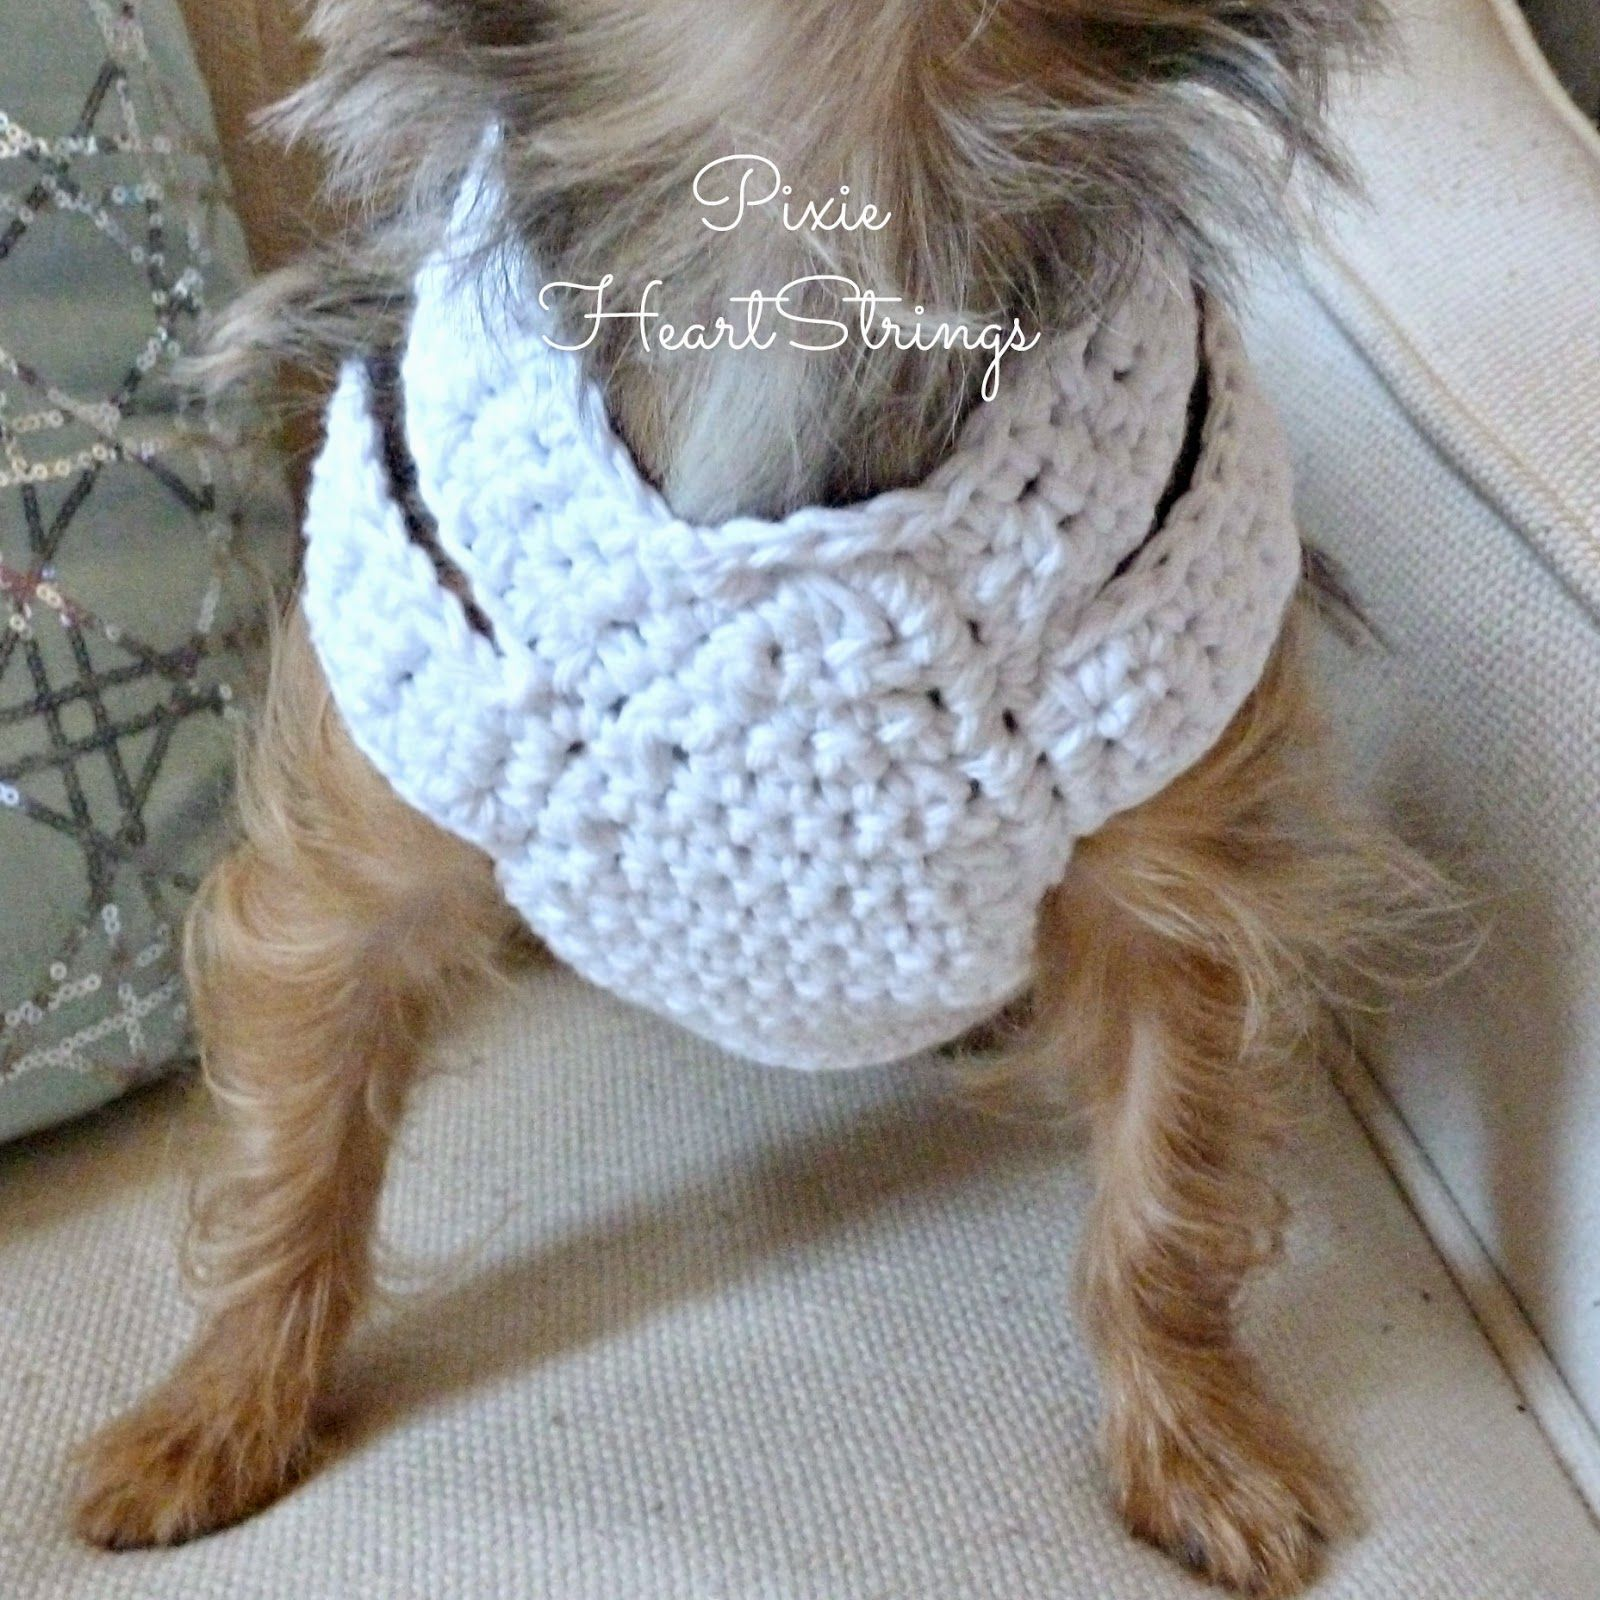 Pixie Heartstrings A Crocheted Dog Harness For Your Tiny Dog